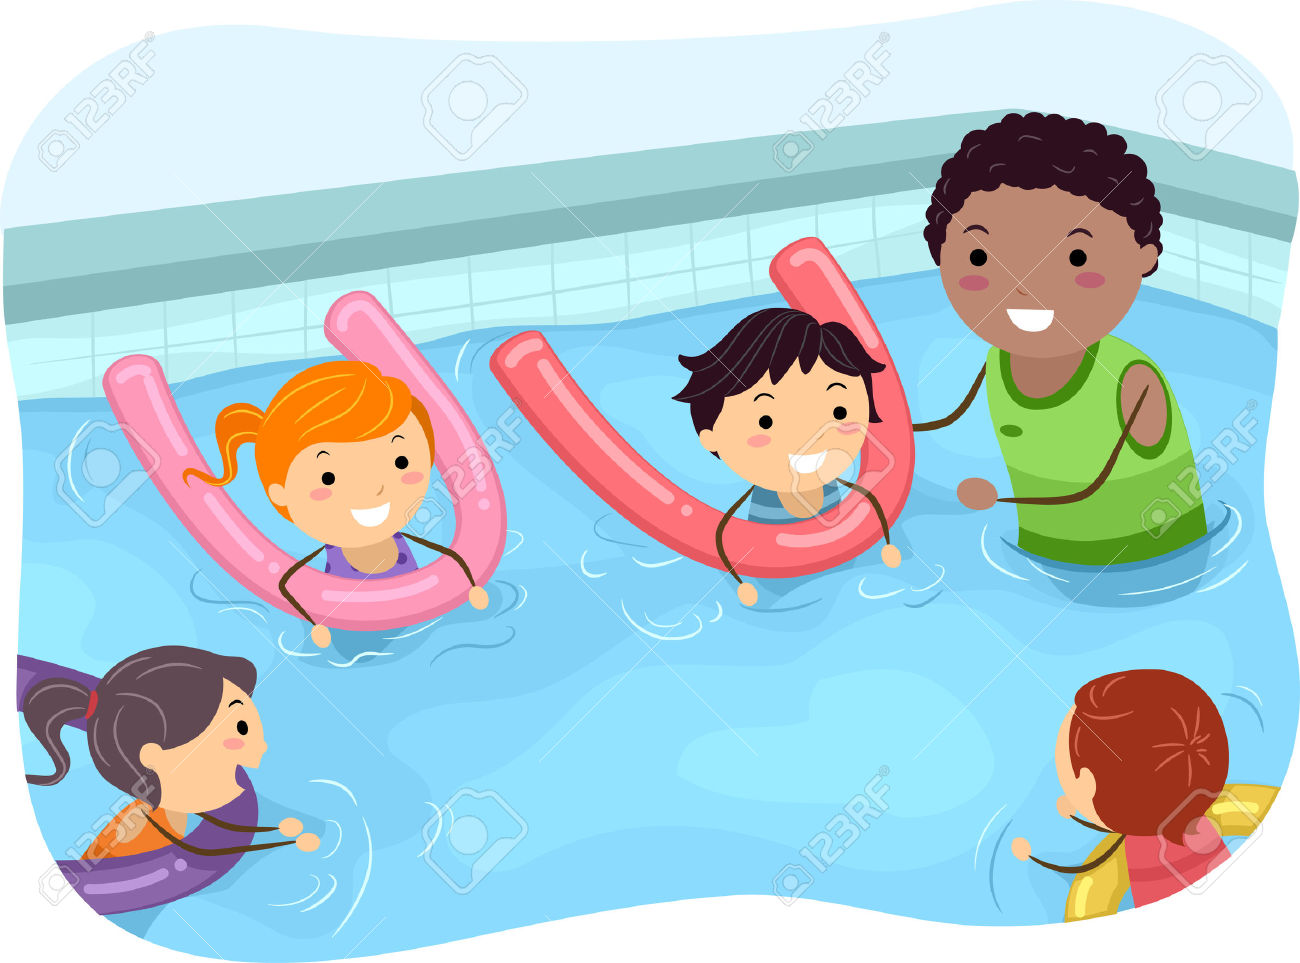 Kids swimming clipart 1 » Clipart Station.